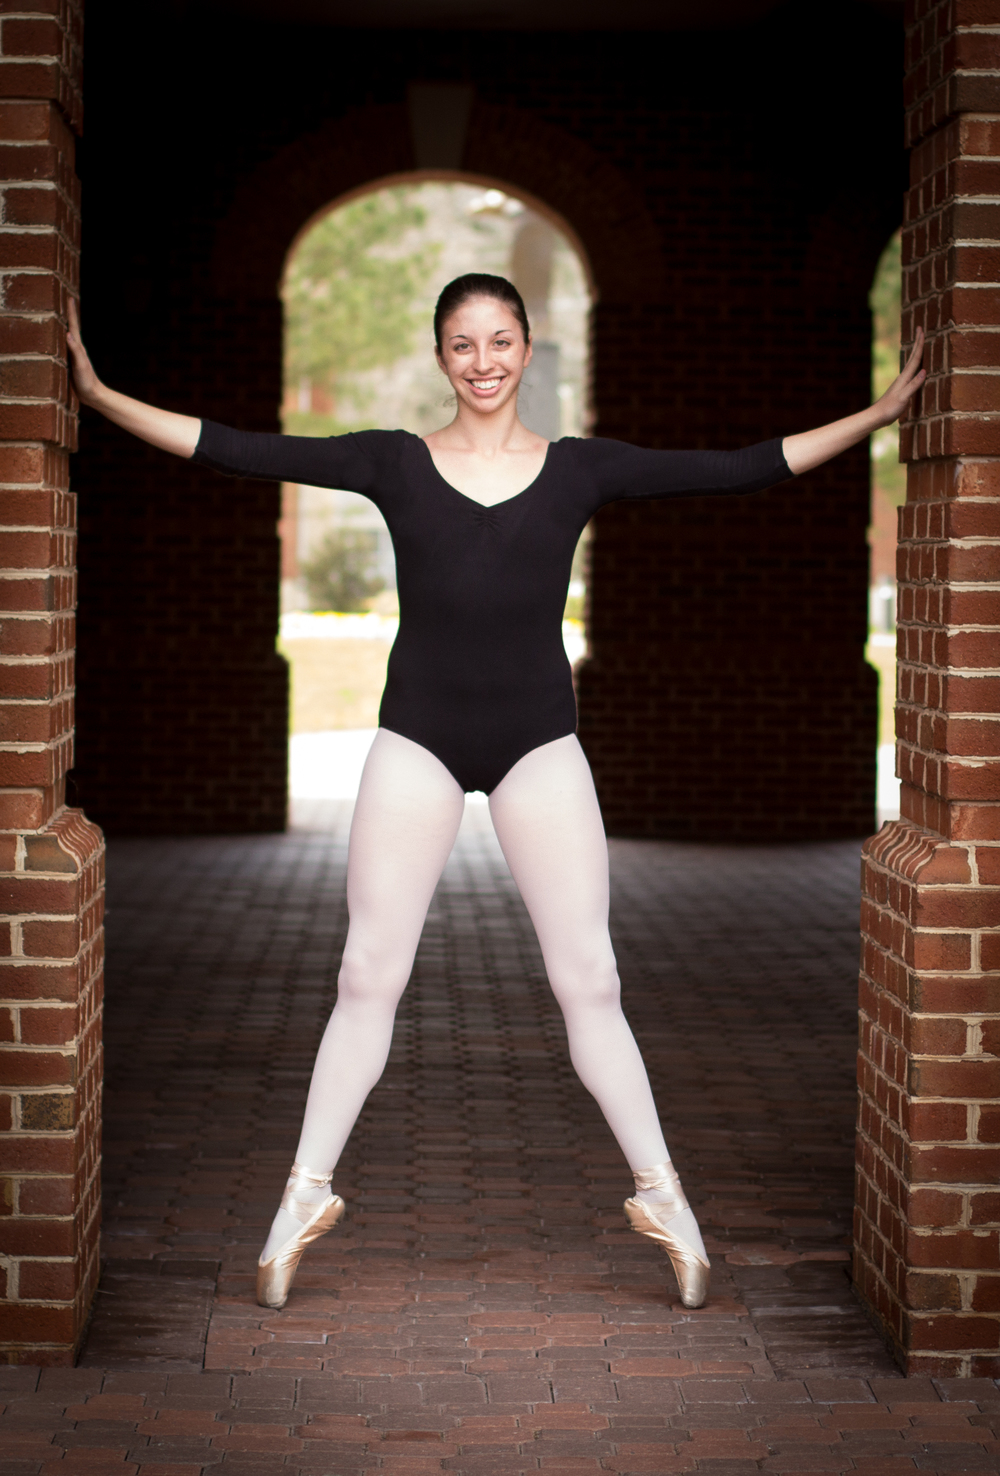 Christa asked me to do her senior portraits for the end of her undergraduate career. She wanted to do something different than the traditional portrait shoot and opted to have them done in her pointe shoes!